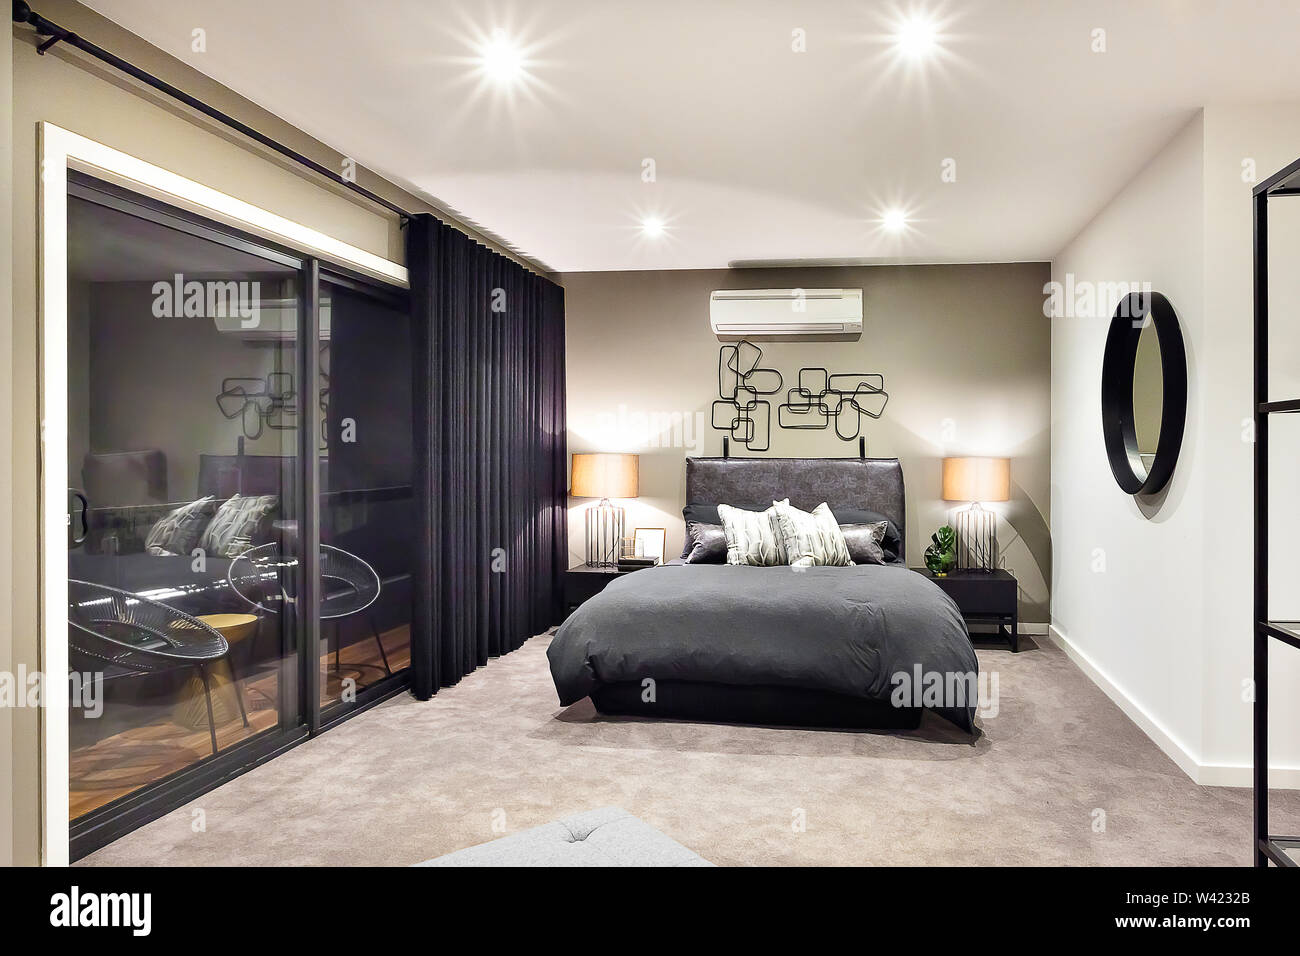 Black color bed in luxurious hotel or house  with flashing lamps beside a glass door or window Stock Photo